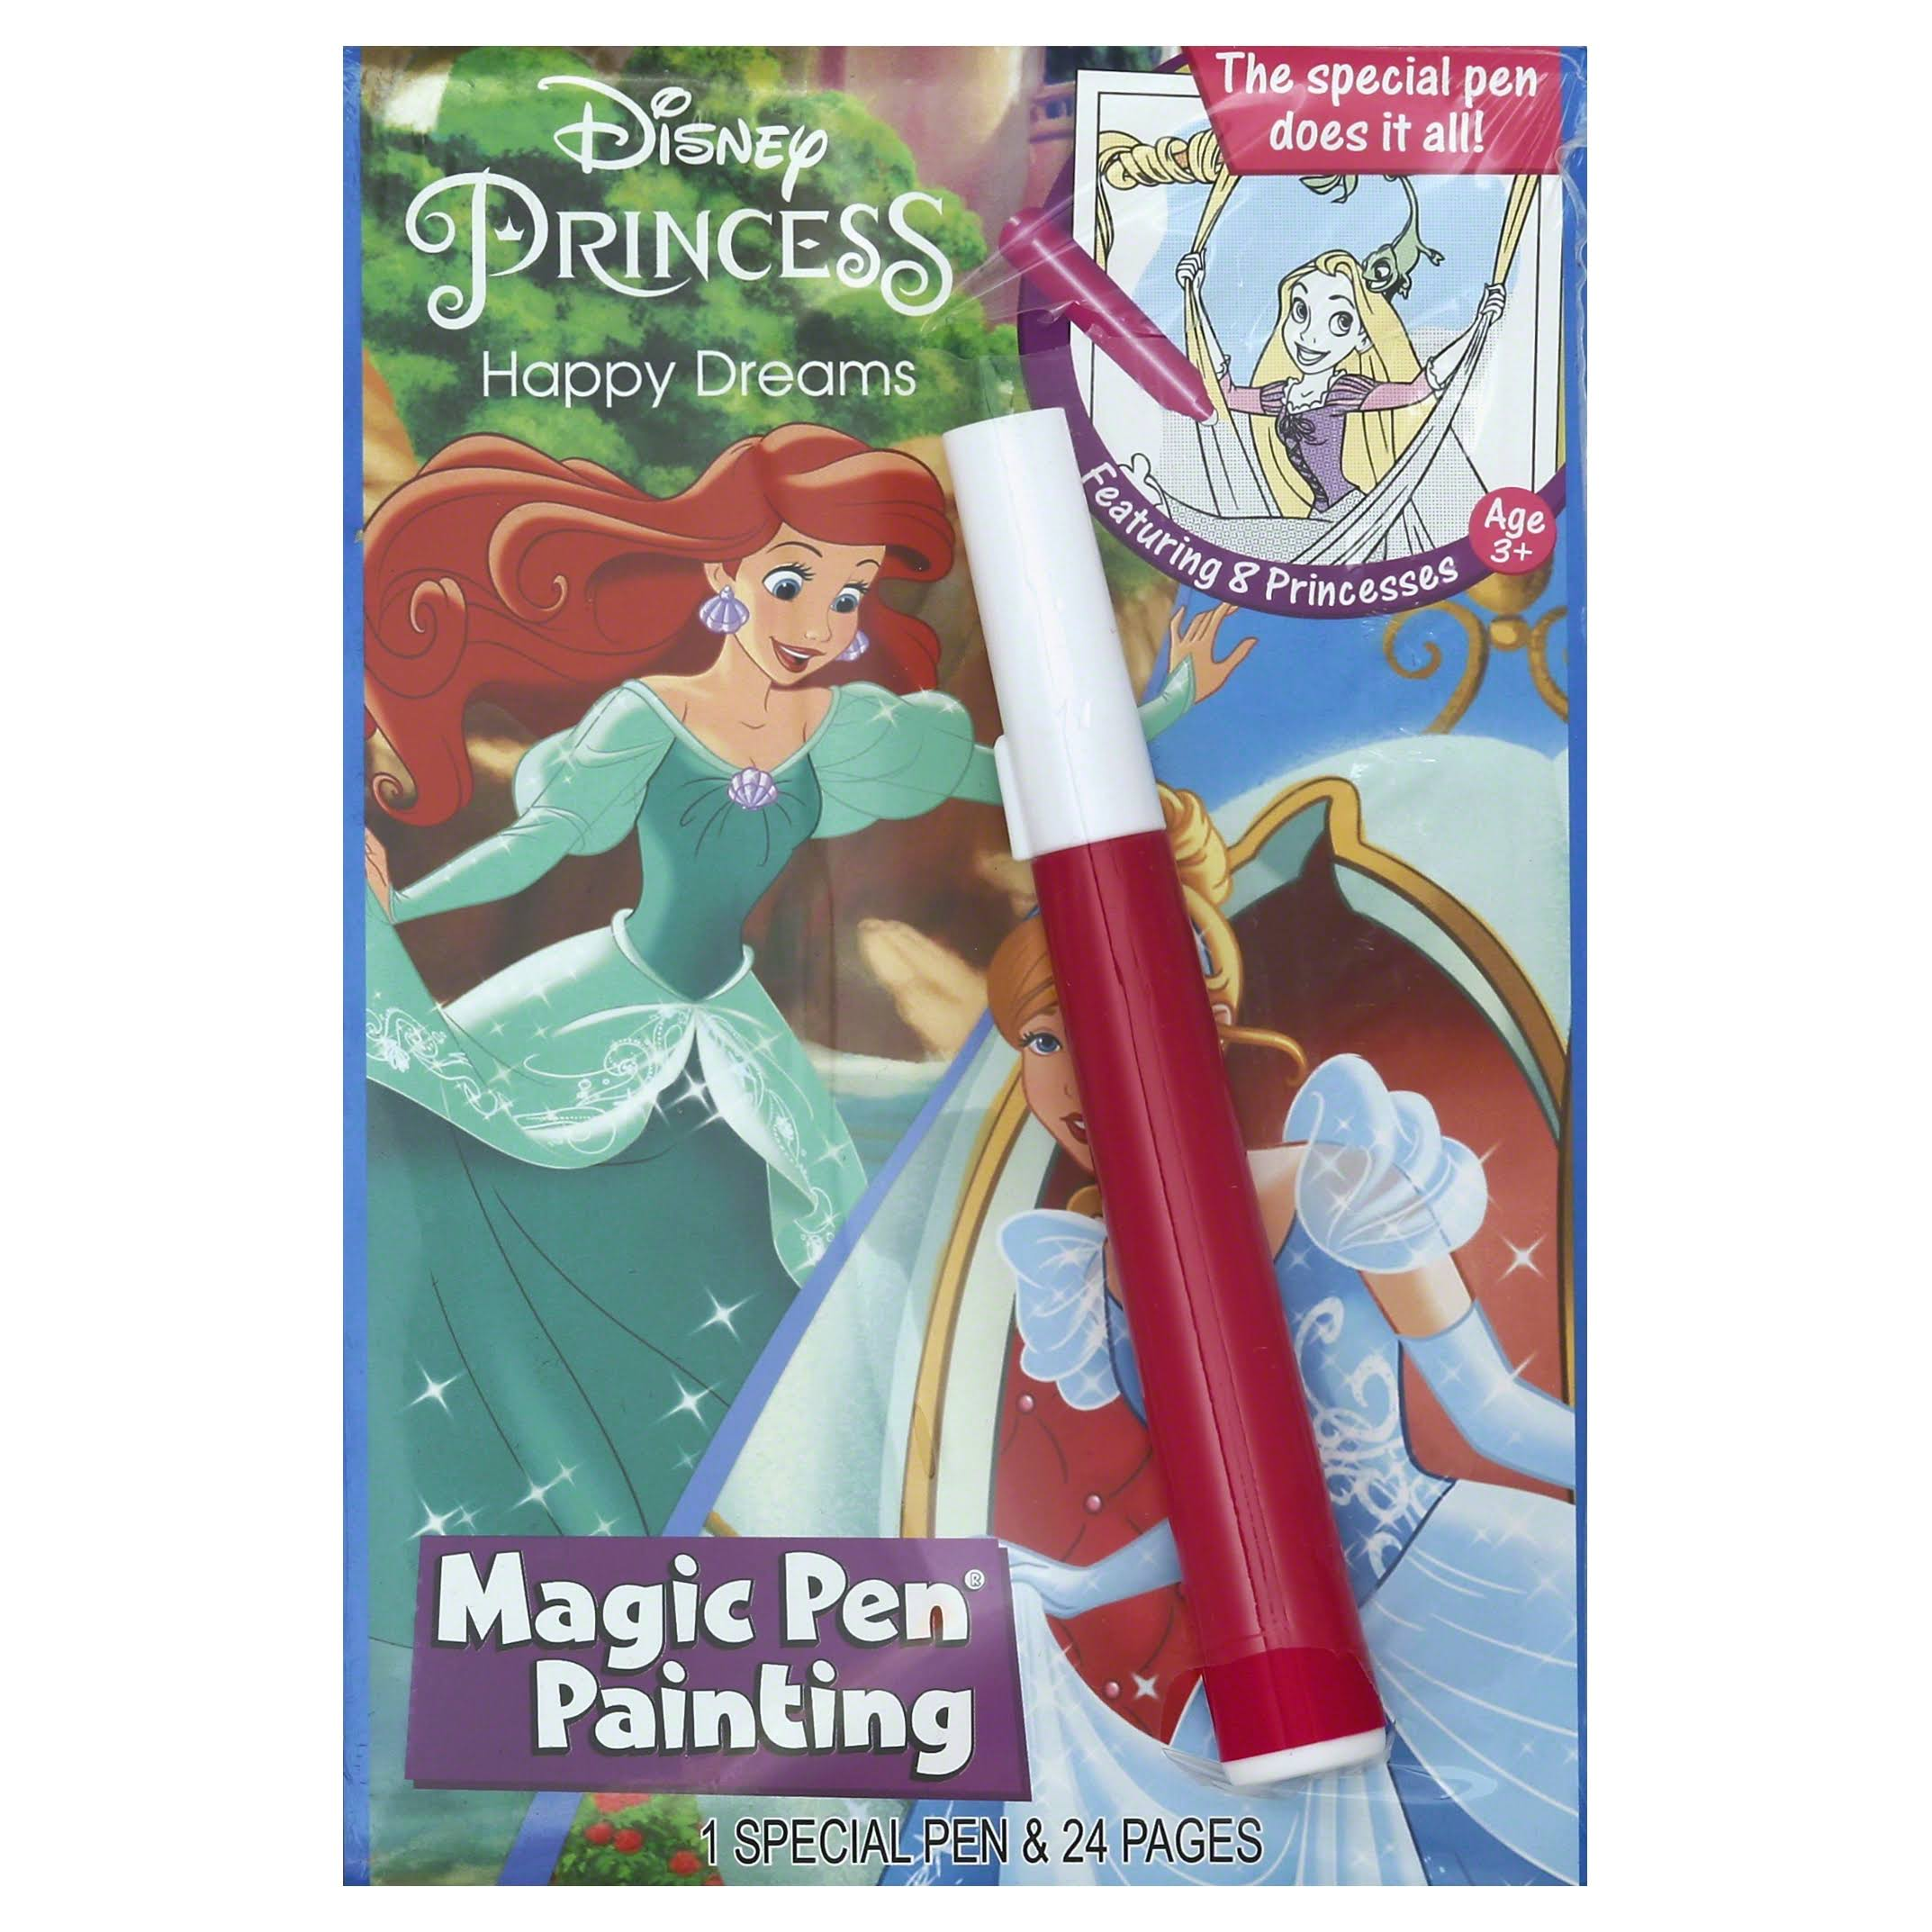 Disney Princess Magic Pen Painting